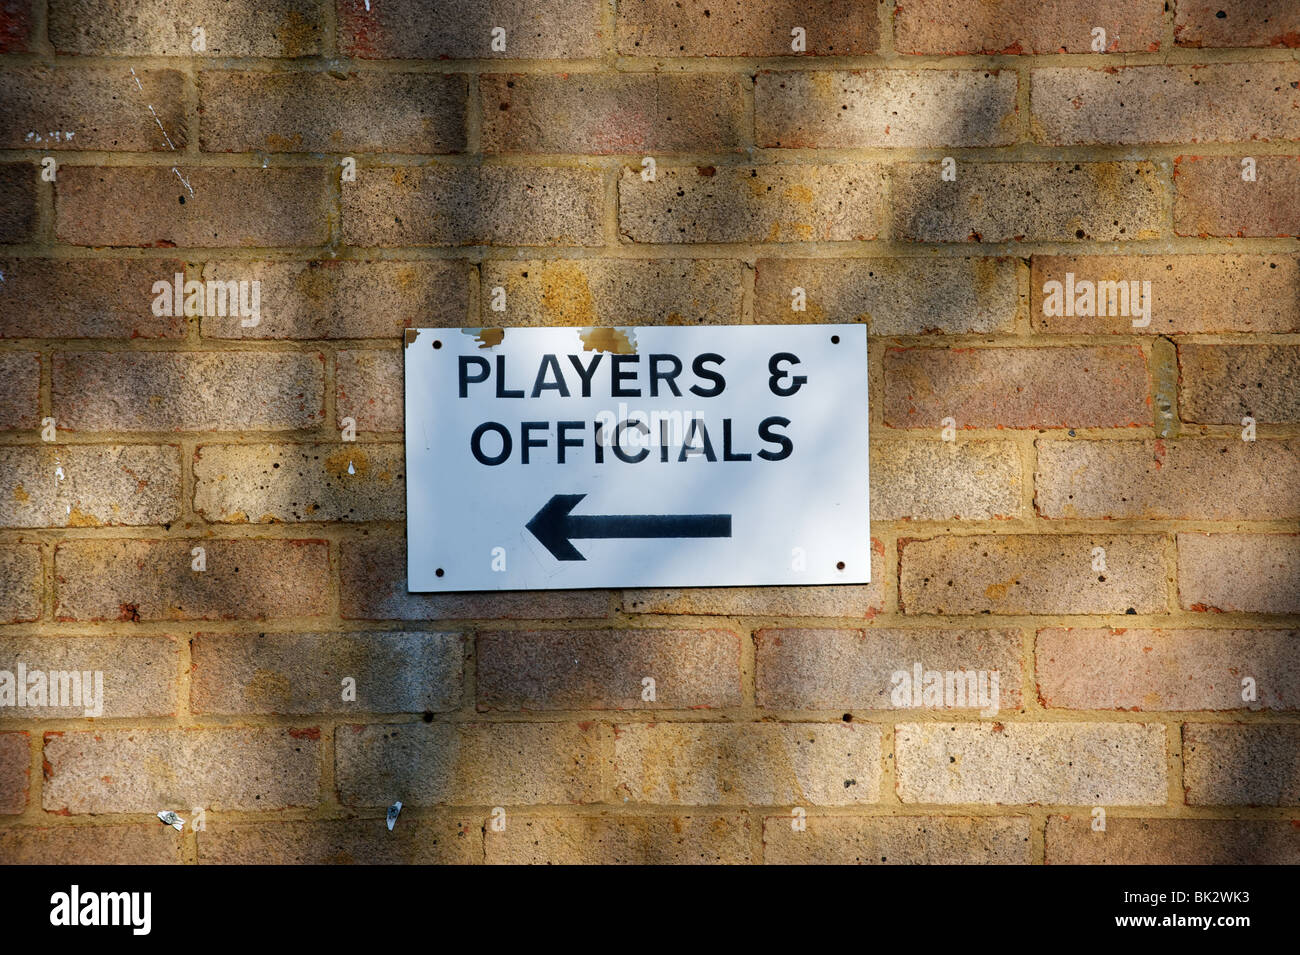 Players and officials sign - Stock Image